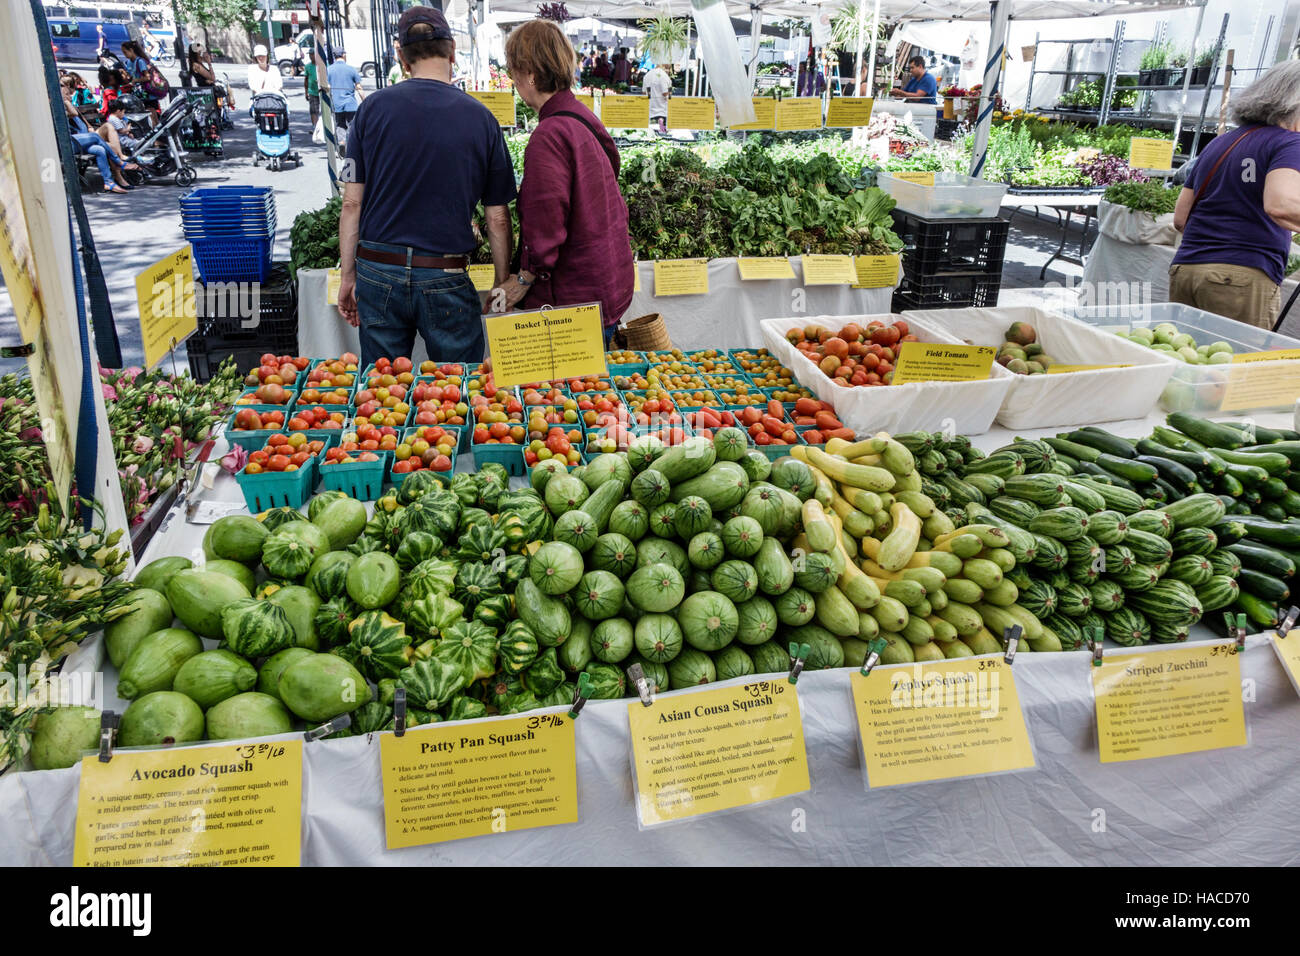 Manhattan New York City NYC NY Midtown Turtle Bay Dag Hammarskjold Plaza Greenmarket farmers market tent tables vegetables avocado squash patty pan Ze & Manhattan New York City NYC NY Midtown Turtle Bay Dag Hammarskjold ...